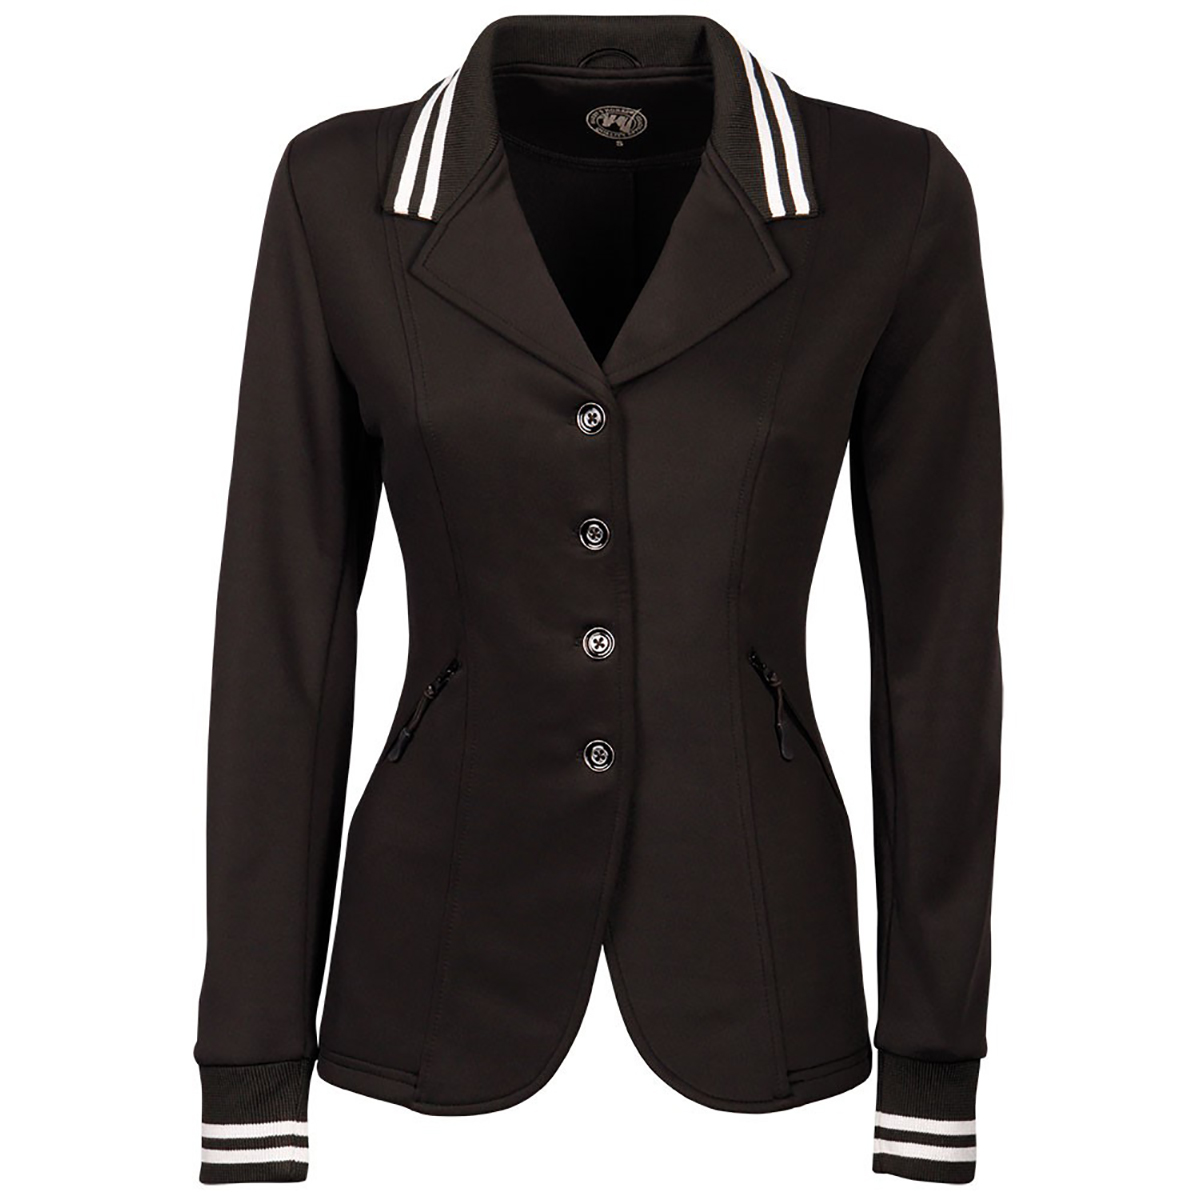 Rijjas Harry's Horse Varsity, XL in 303